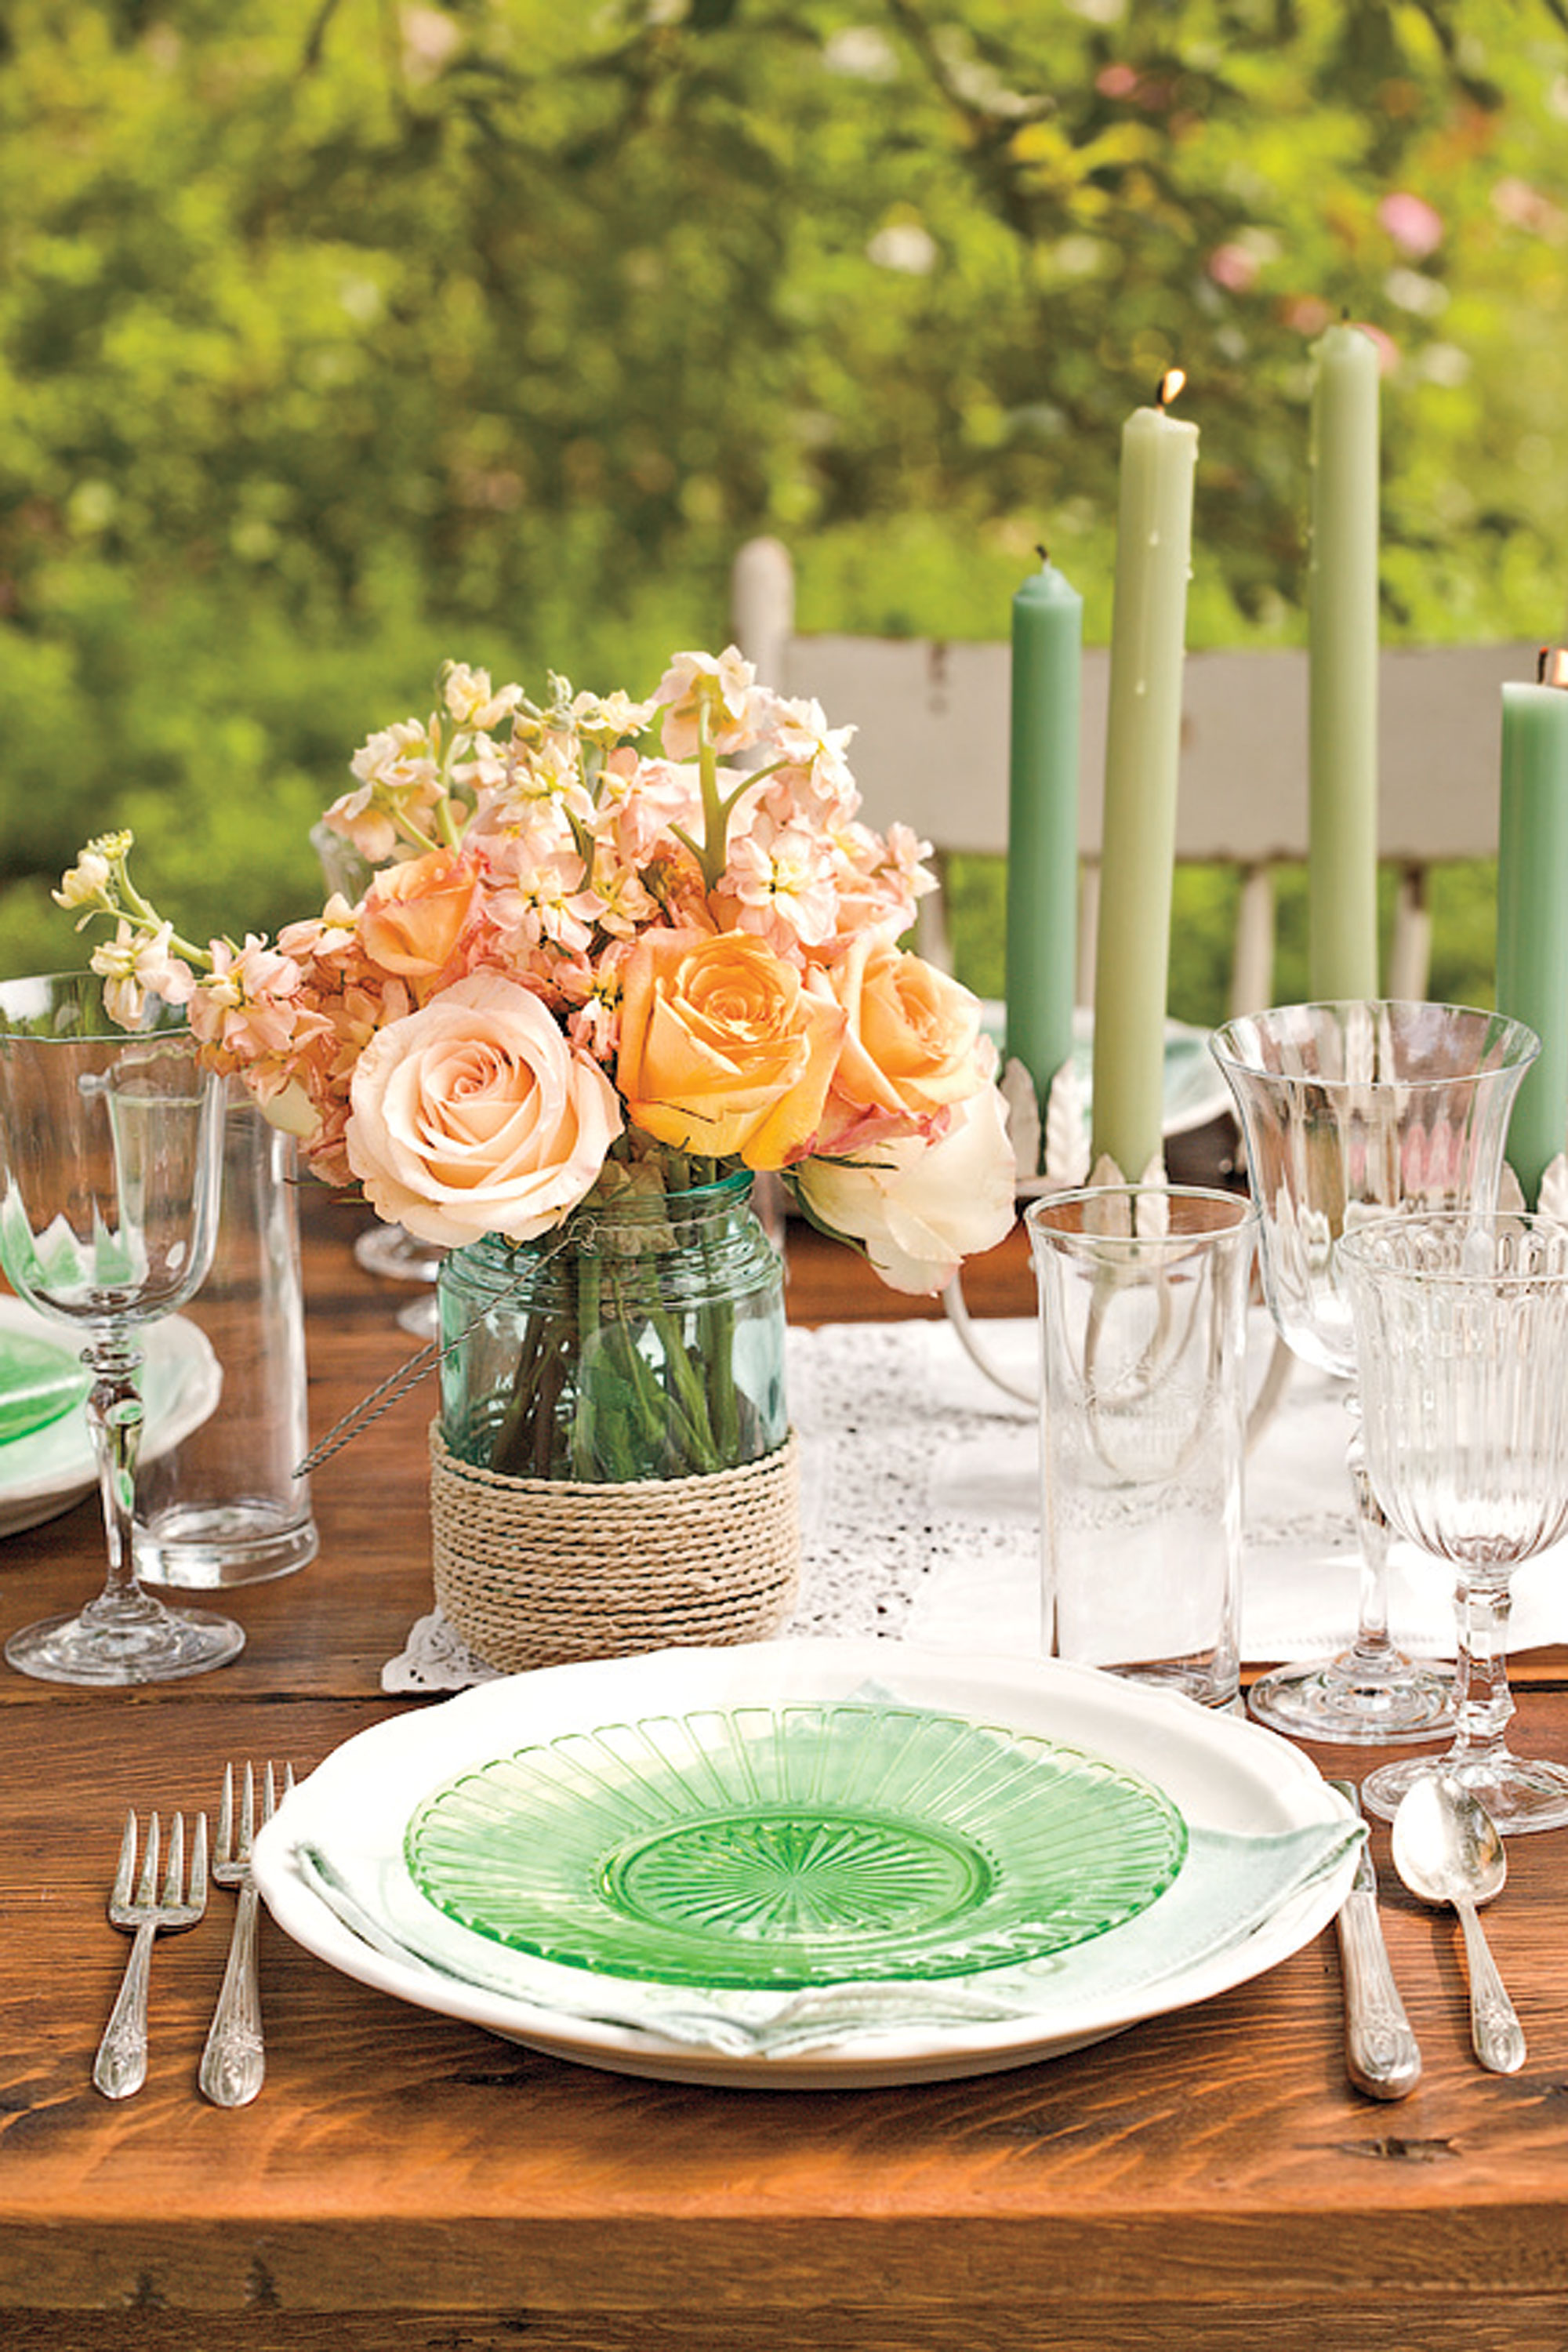 Beautiful 58 Spring Centerpieces And Table Decorations   Ideas For Spring Table  Settings